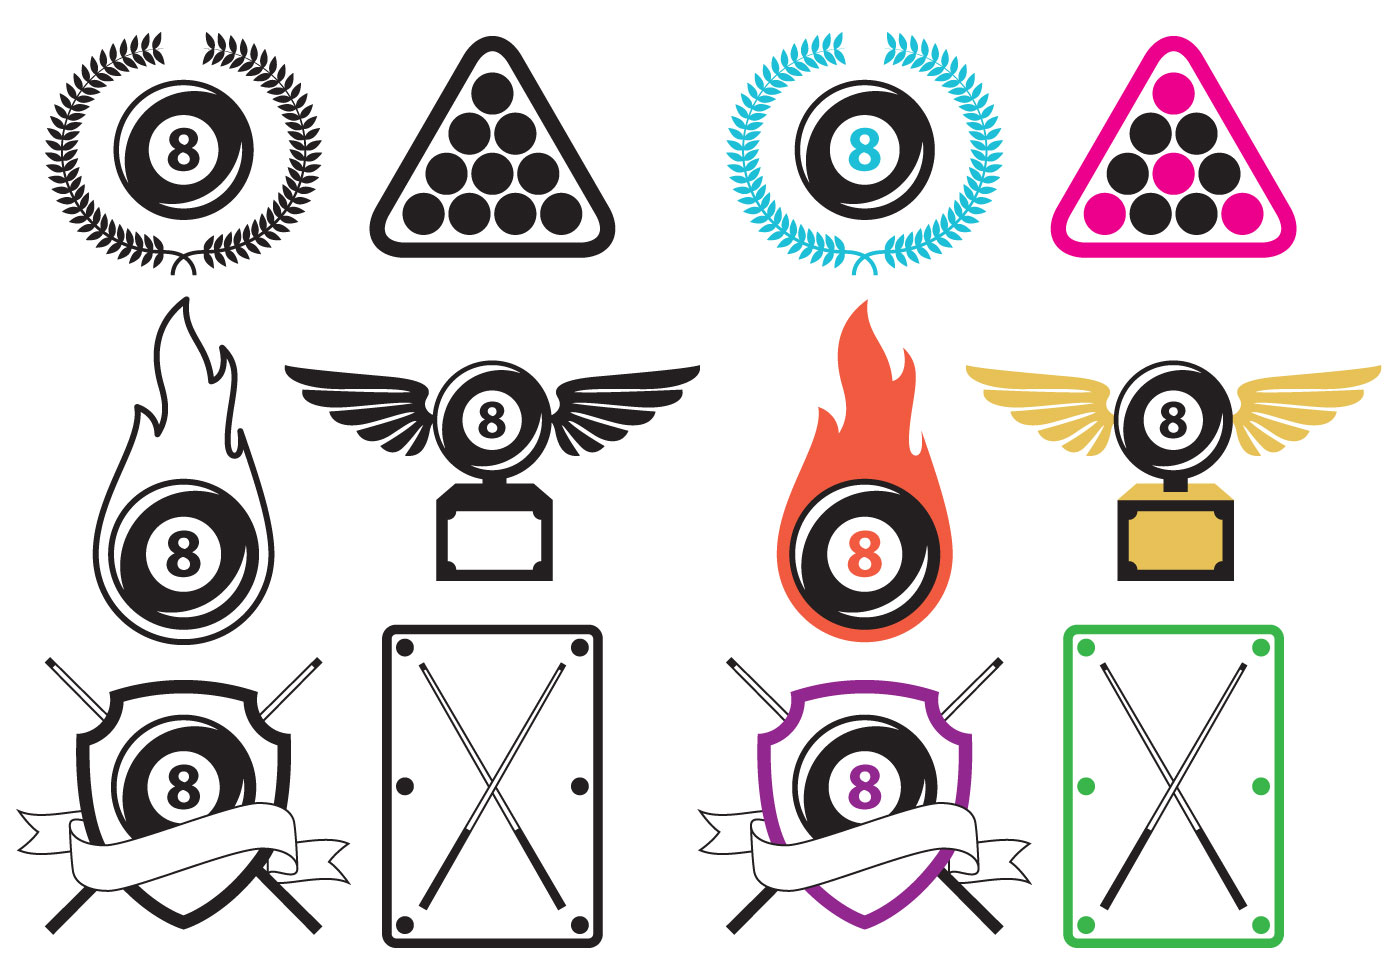 Billiard Logo Vectors - Download Free Vector Art, Stock Graphics ...